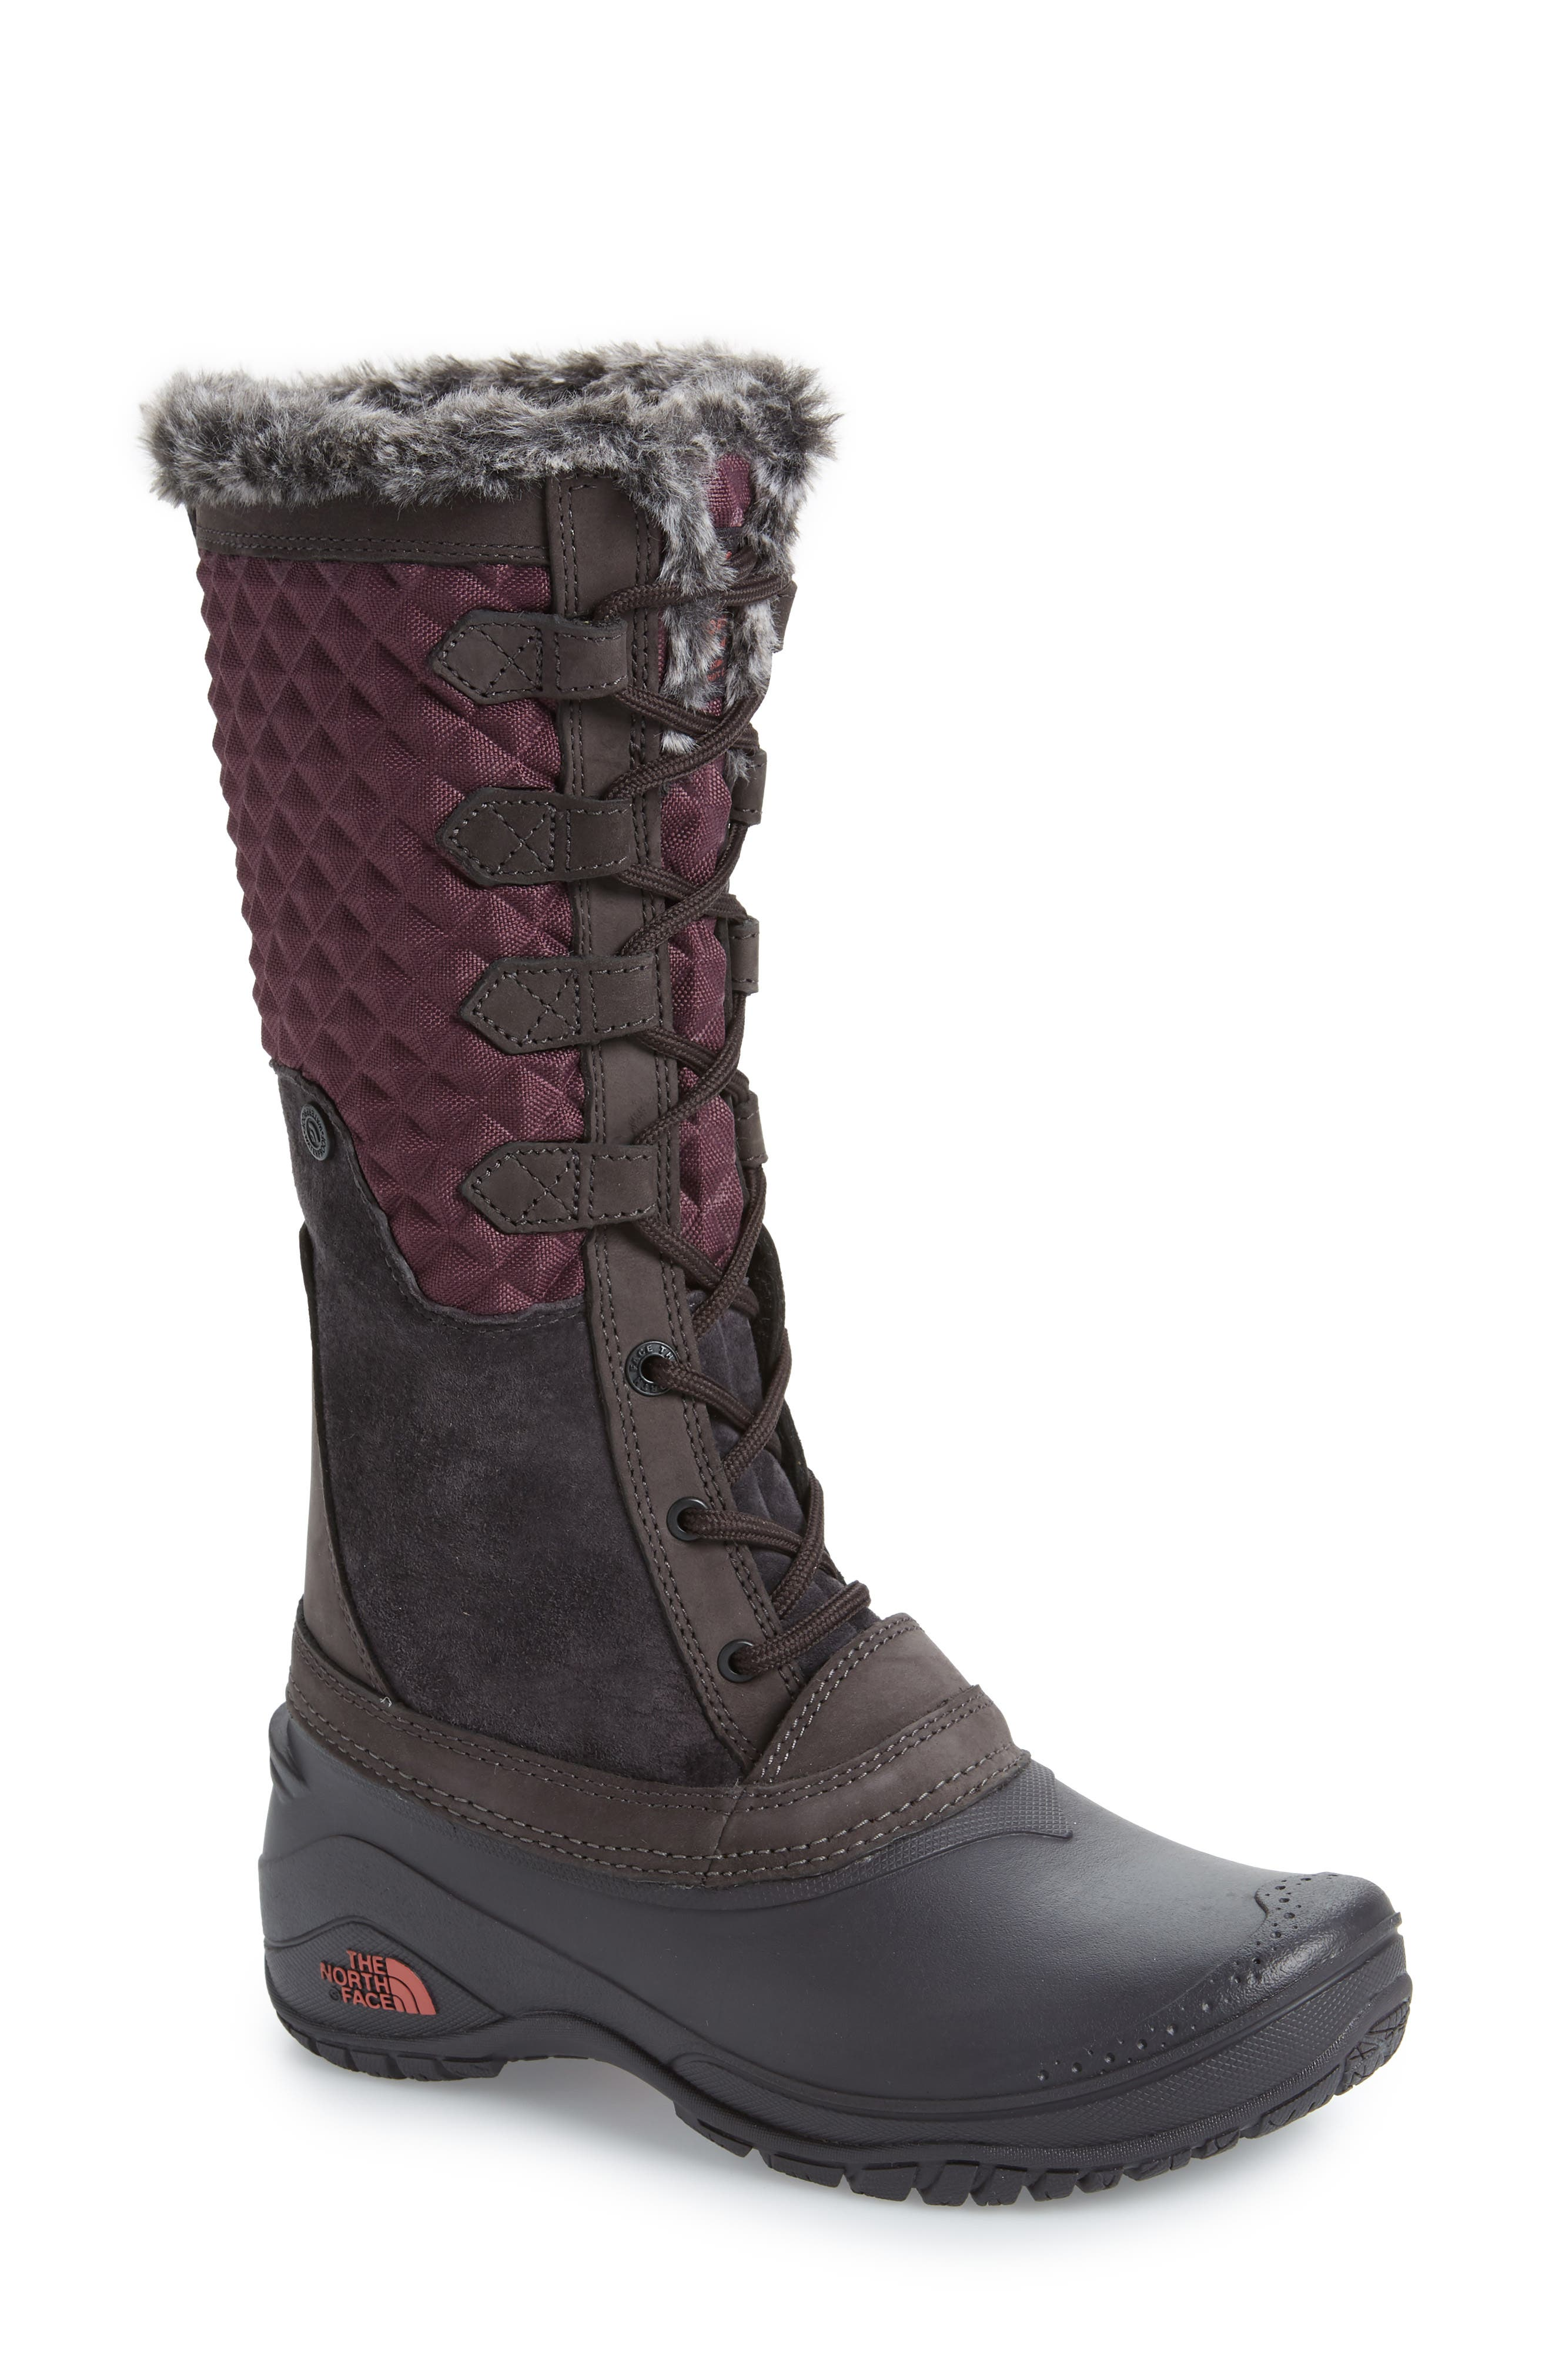 THE NORTH FACE Shellista III Tall Waterproof Insulated Winter Boot, Main, color, FIG/ WEATHERED BLACK